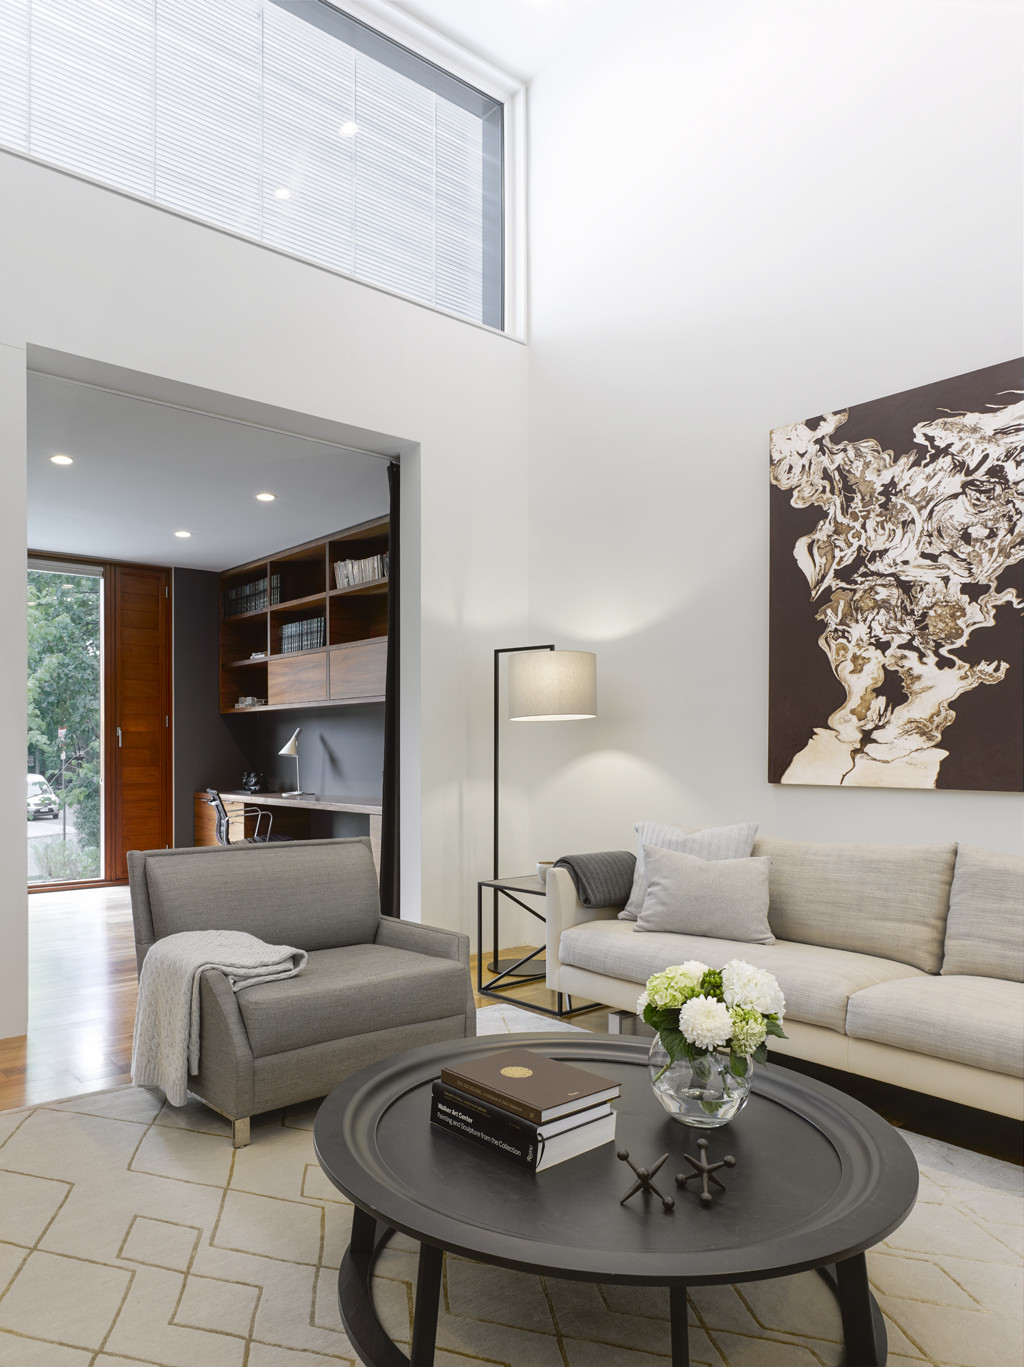 Counterpoint lofty, light-filled home by Paul Raff Studio Architects-15